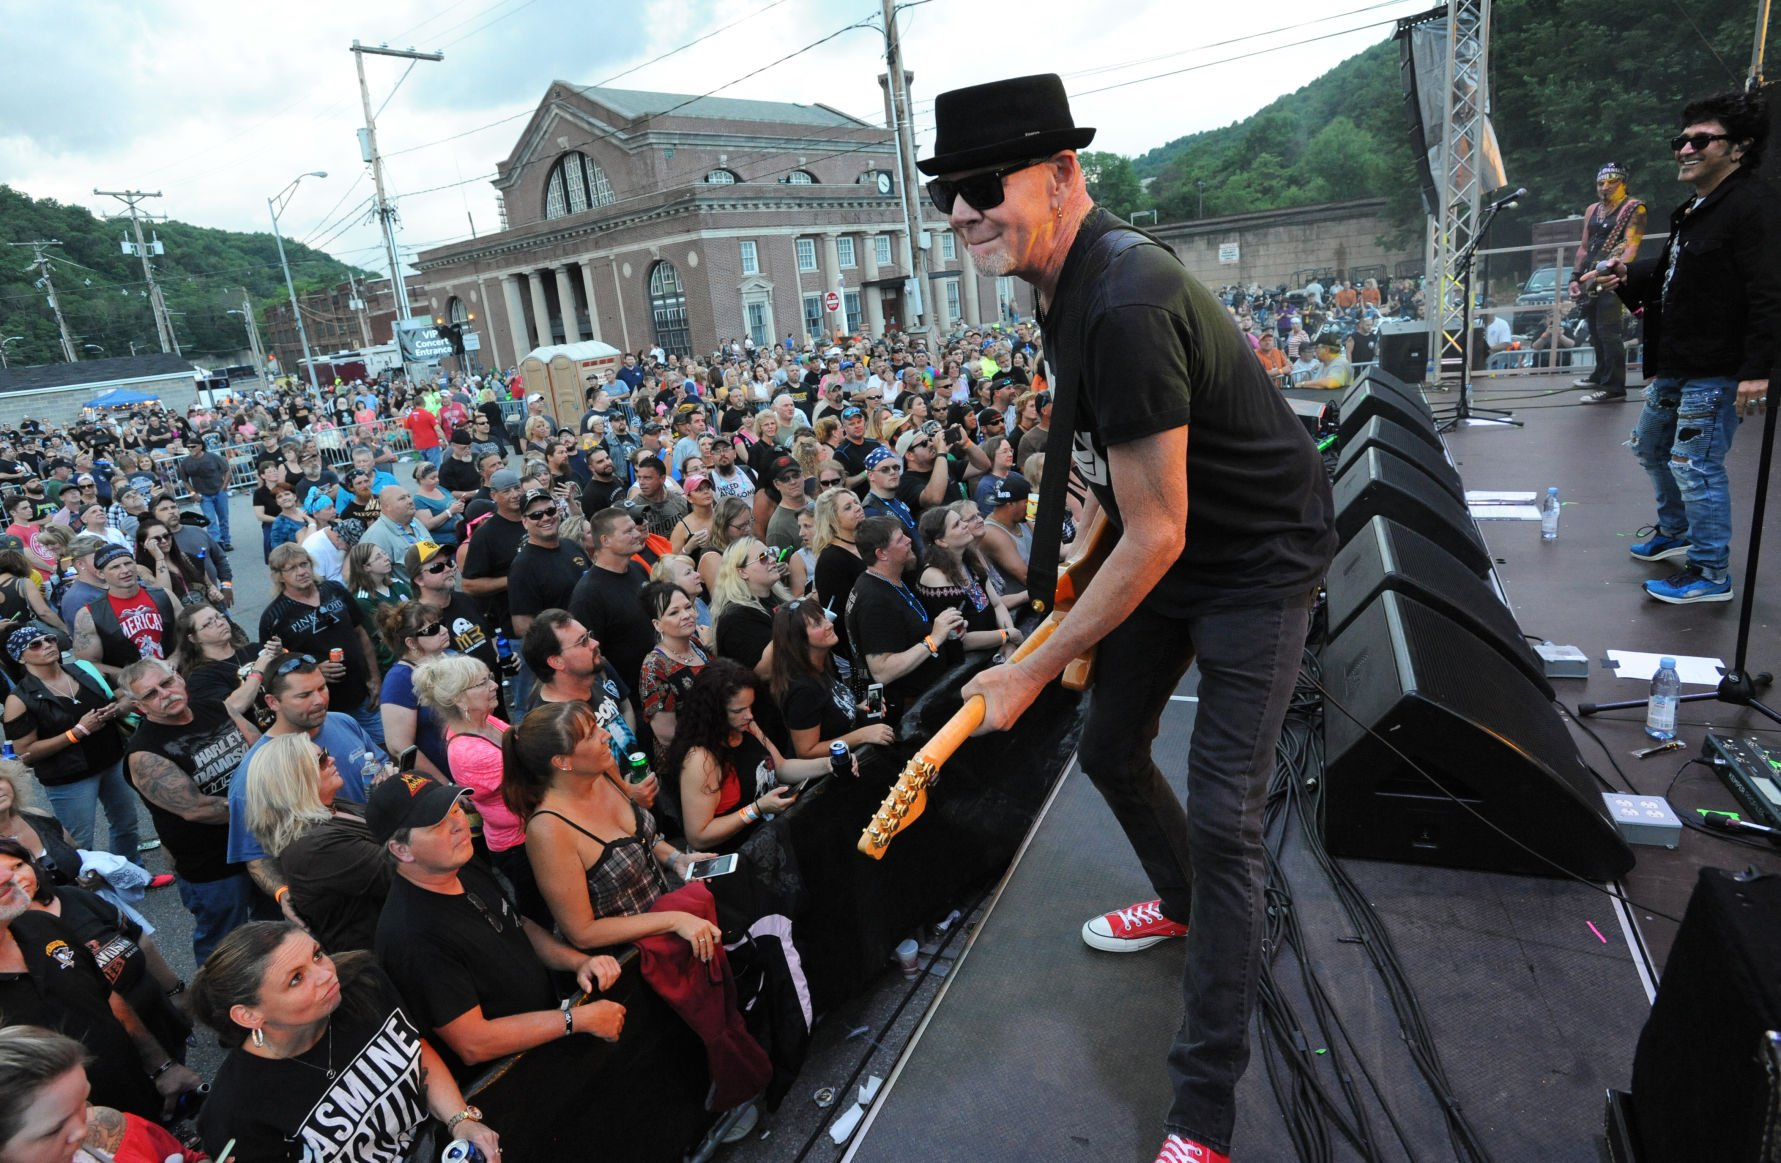 ... And His Band Great White Perform On The Train Station Stage During The  21st Annual Thunder In The Valley Motorcycle Rally In Johnstown, PA.,  Saturday, ...